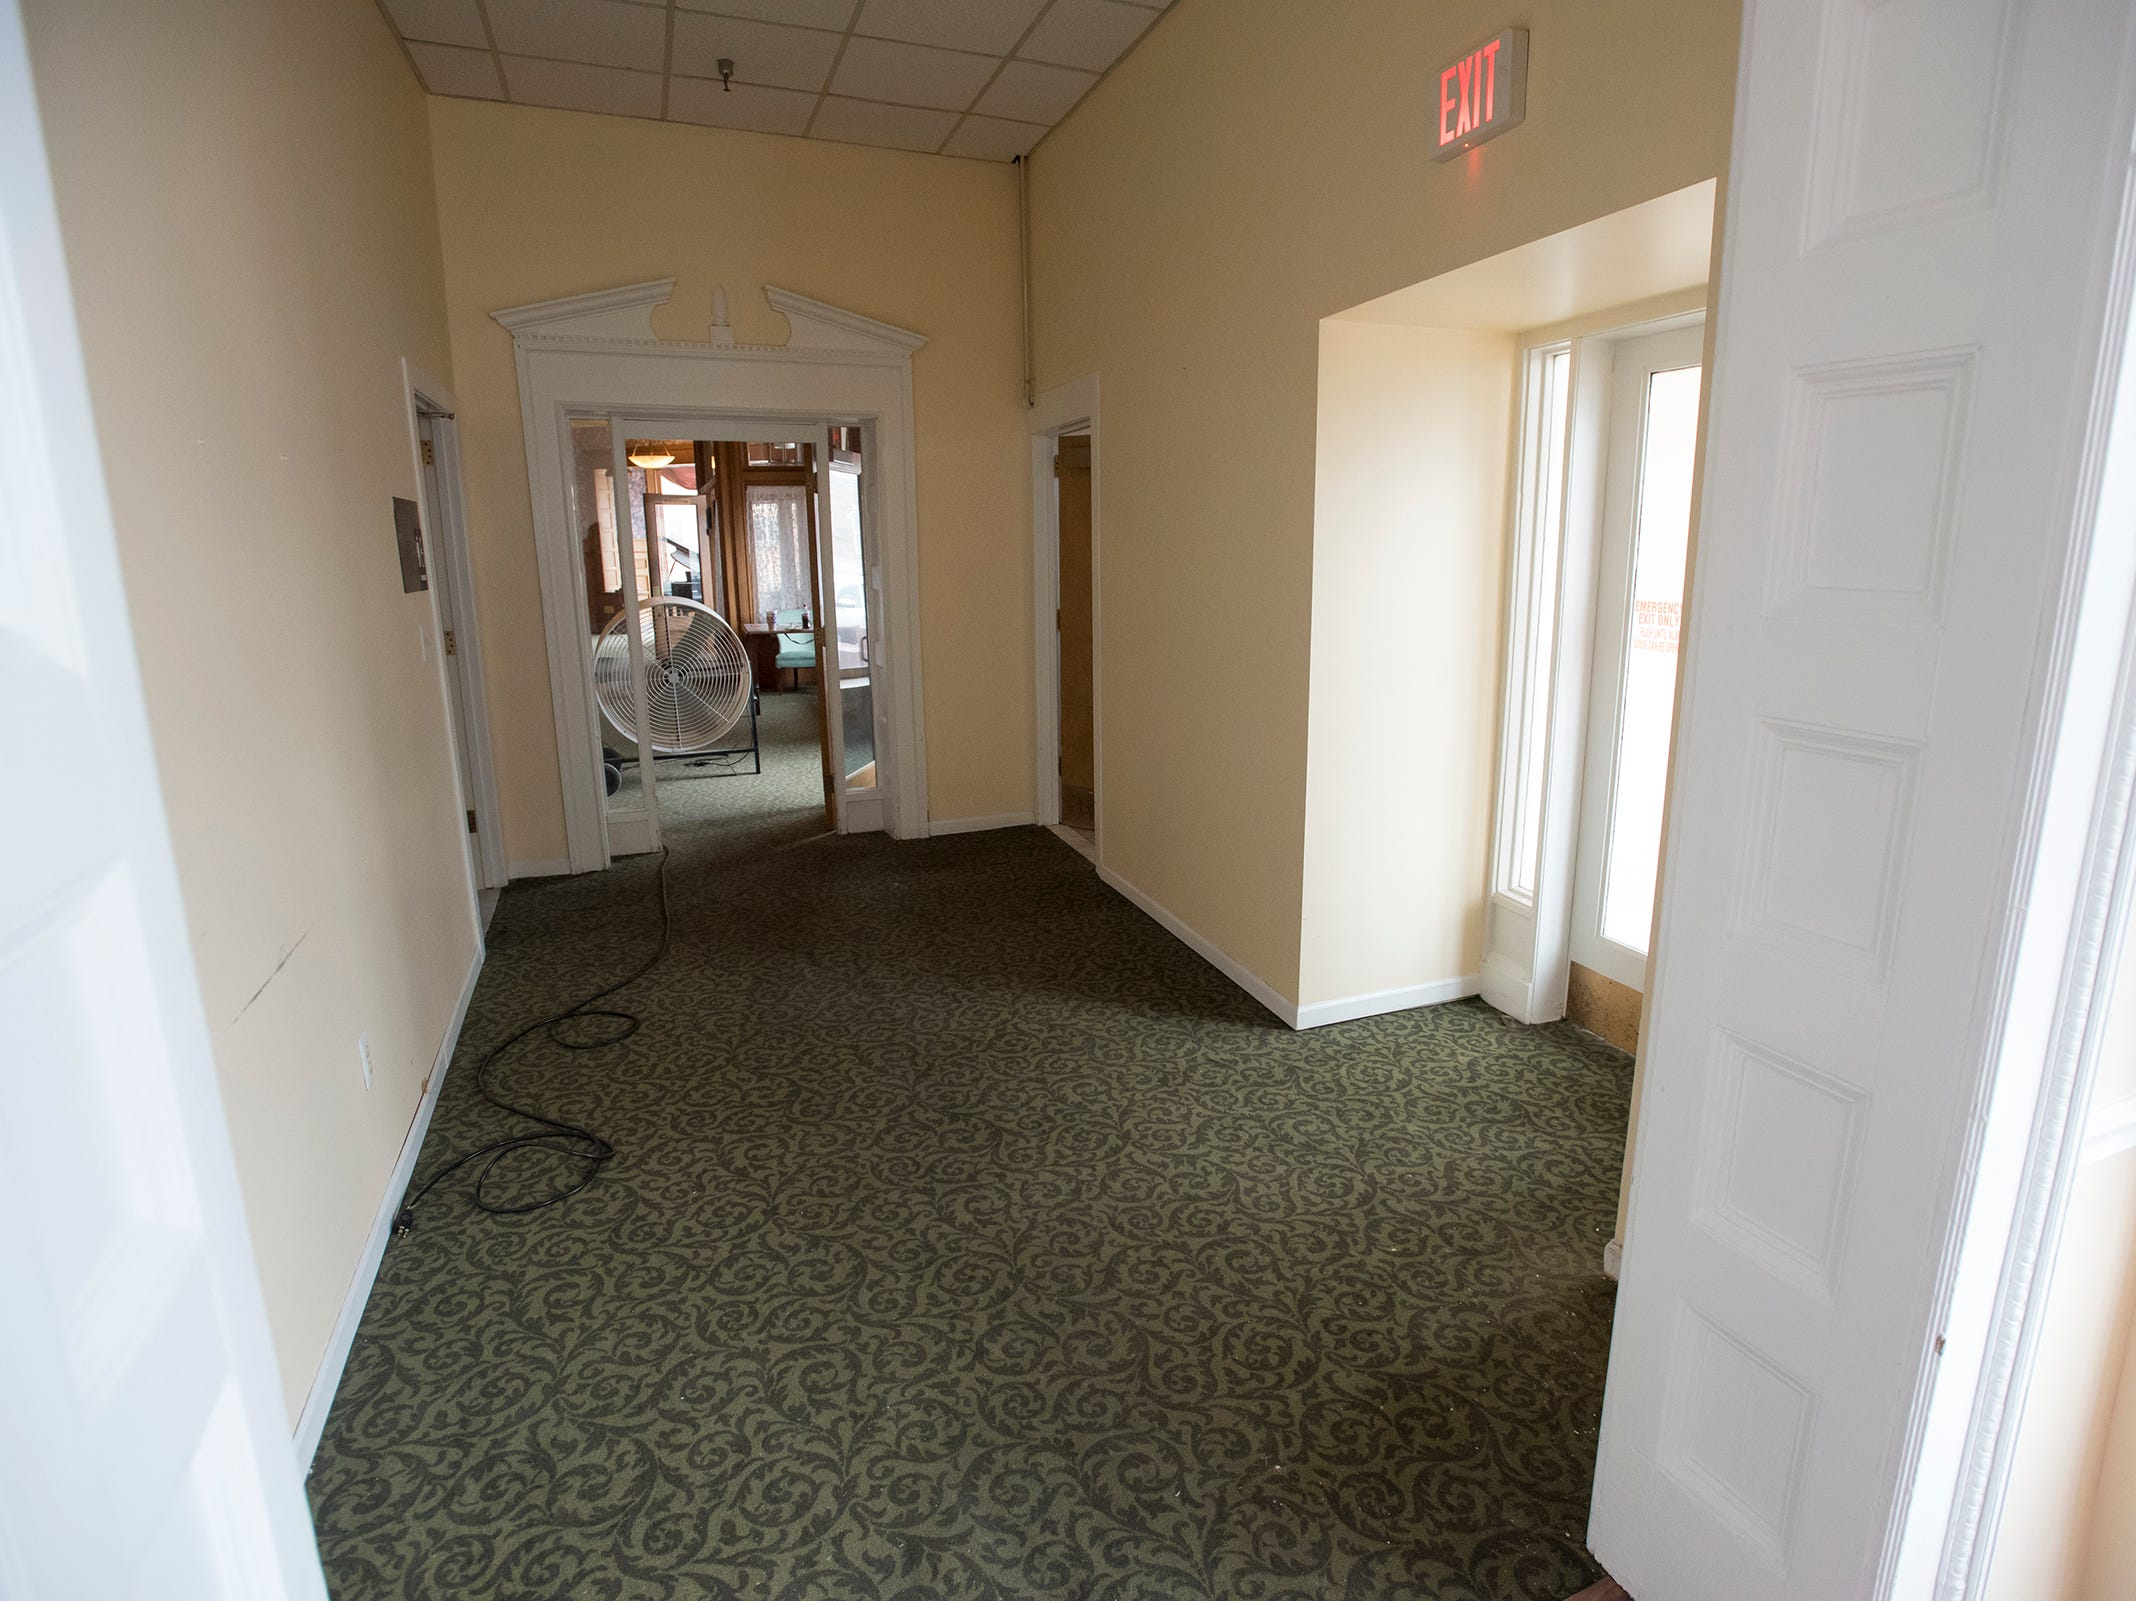 During renovations, the restrooms on the first floor of the hotel will be moved to the back of the restaurant, and the short hallway will be opened up into a gift shop.